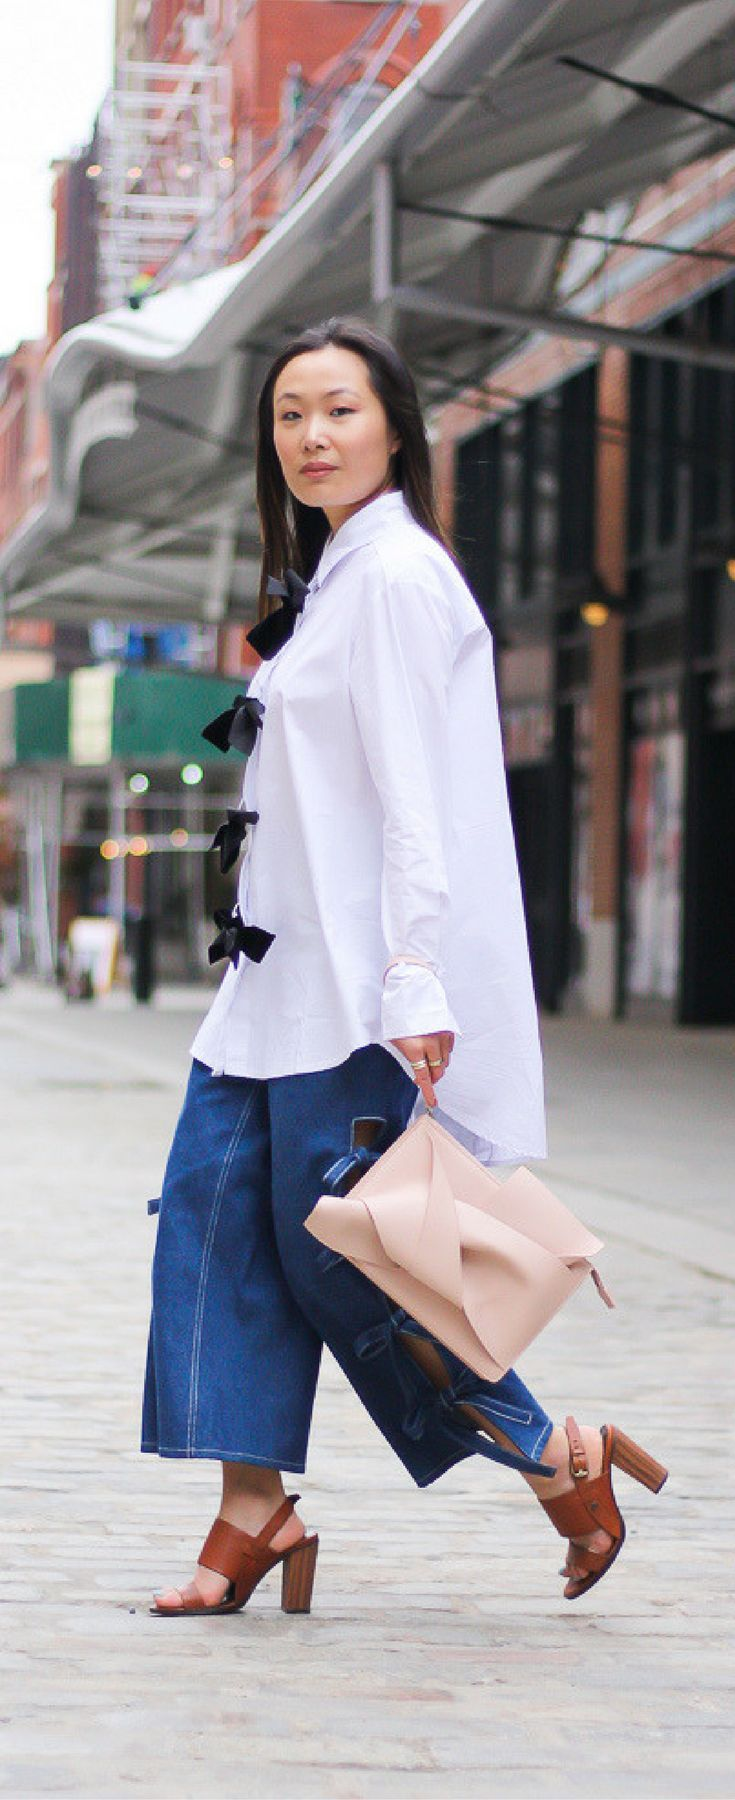 bow shirt, bow jeans, street style cool girl. Get the look on www.layersofchic.com